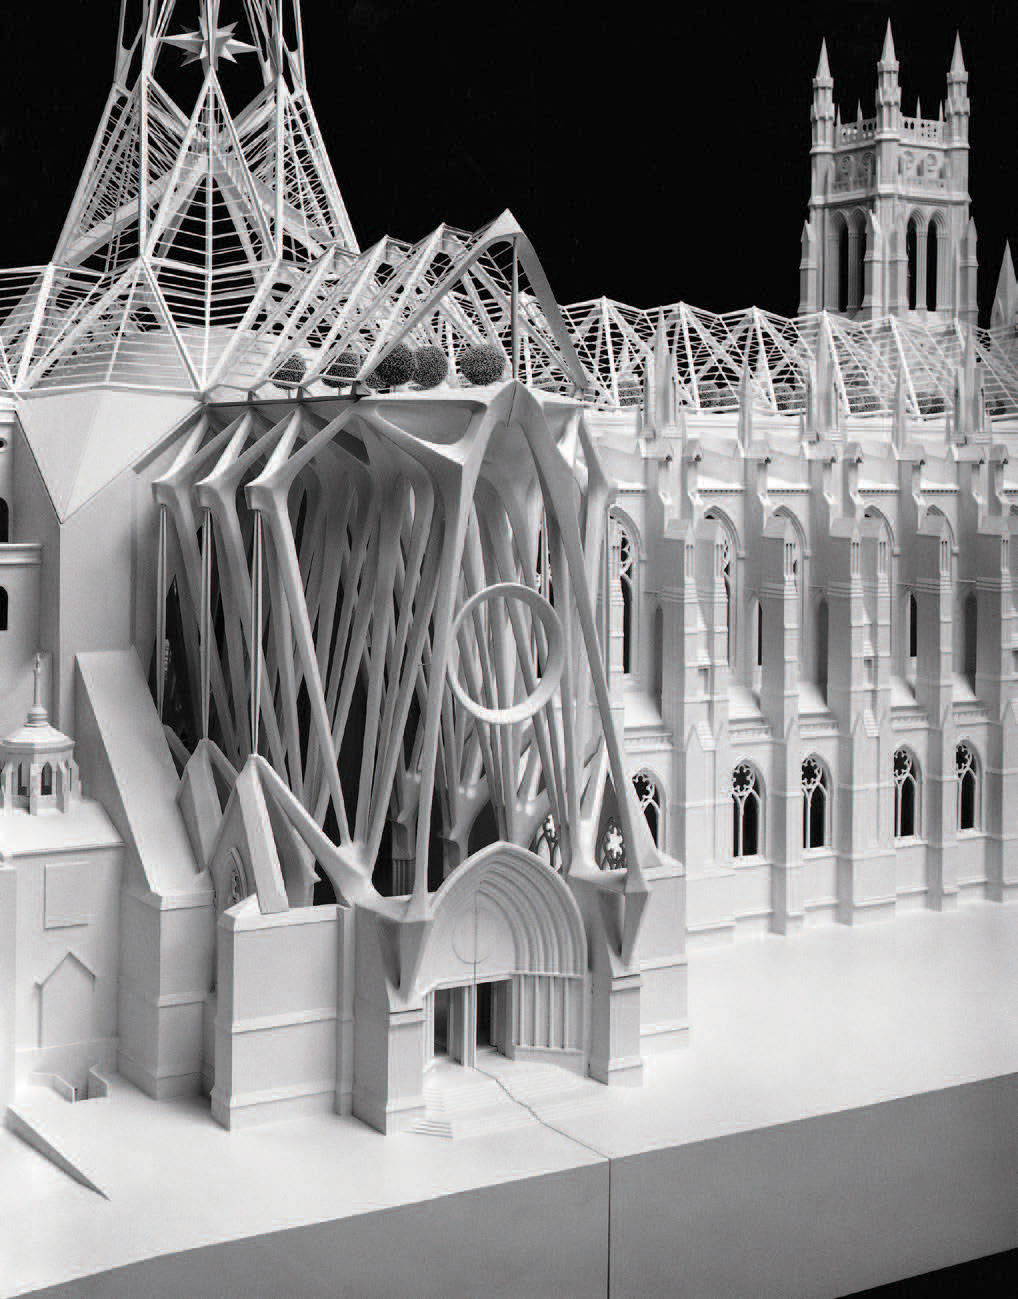 Model for Santiago Calatrava's Cathedral of St. John the Divine, 1992